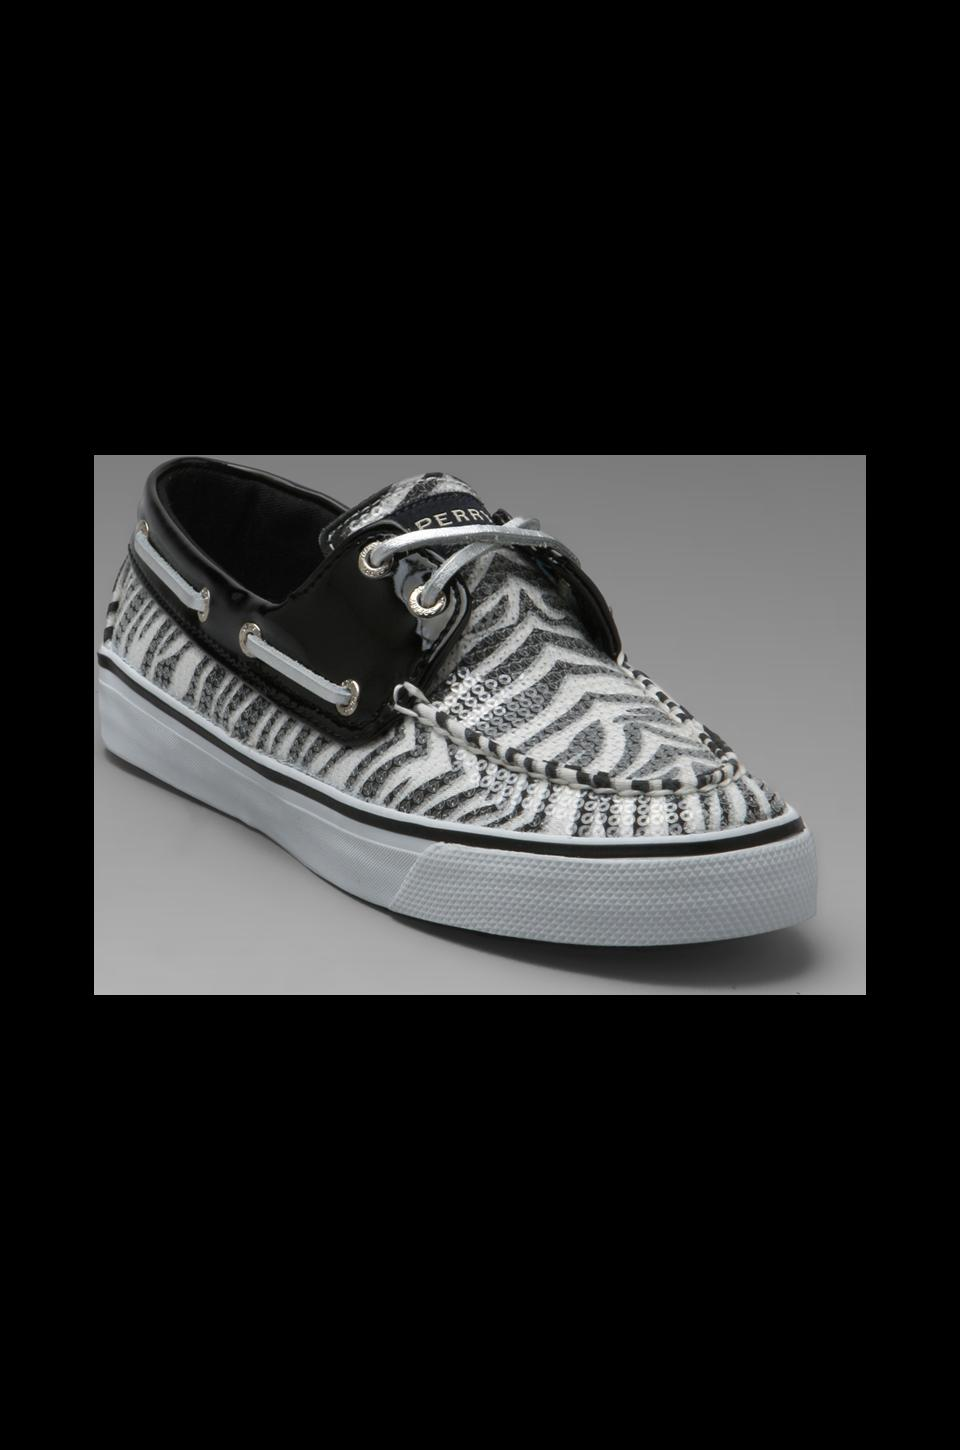 Sperry Top-Sider Bahama 2-Eye in Black/White